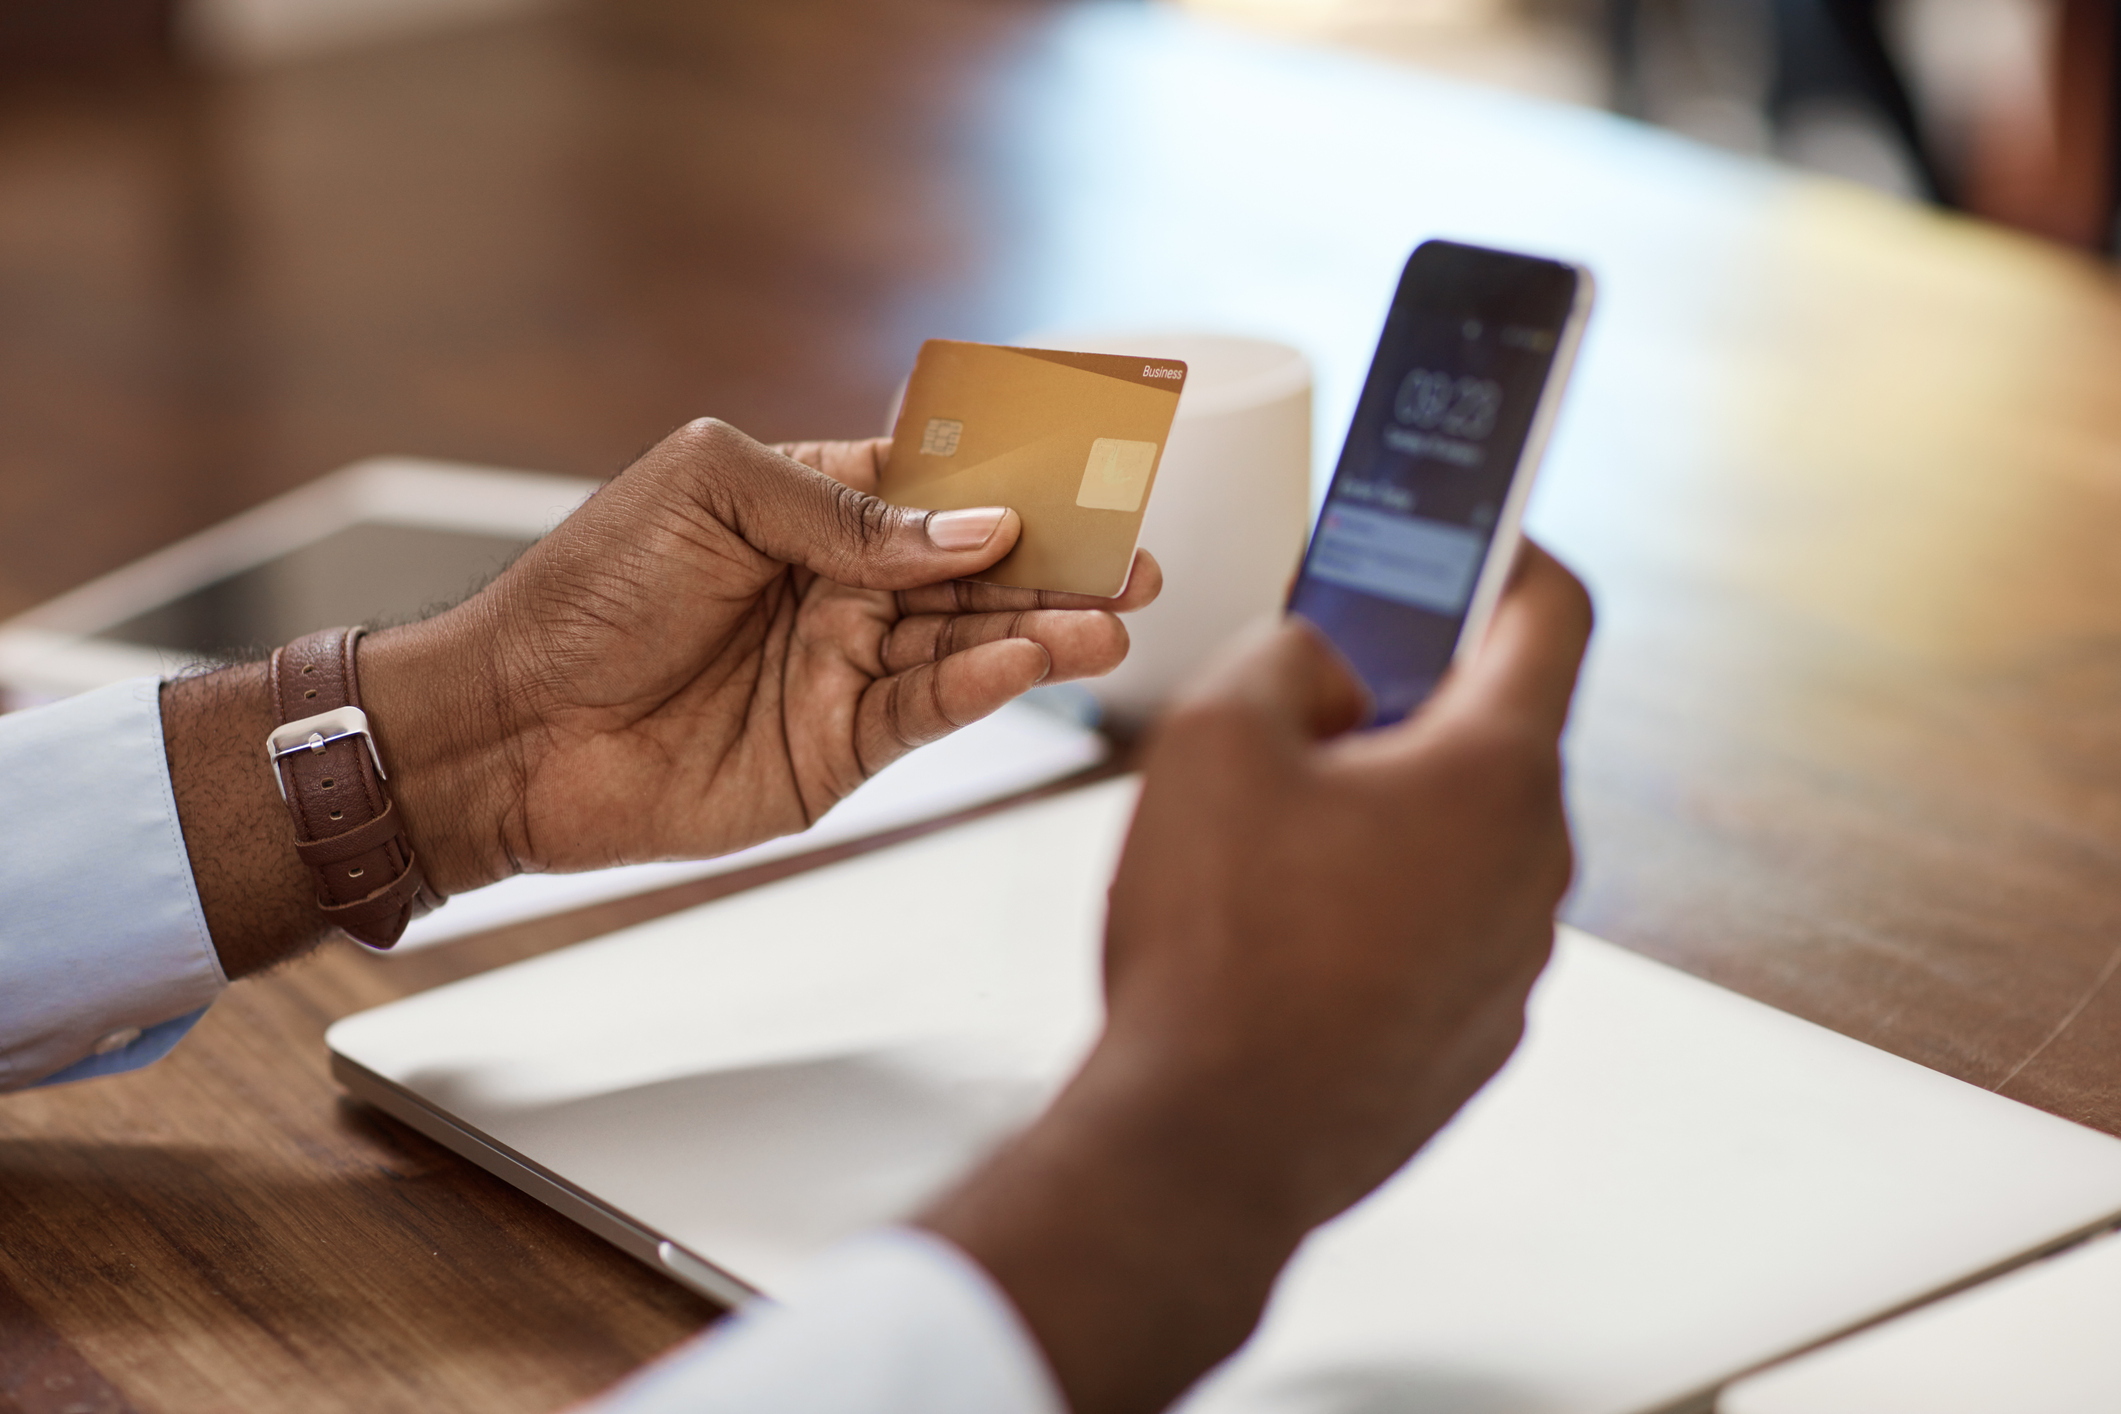 Mobile banking 101: Why it's safe and convenient